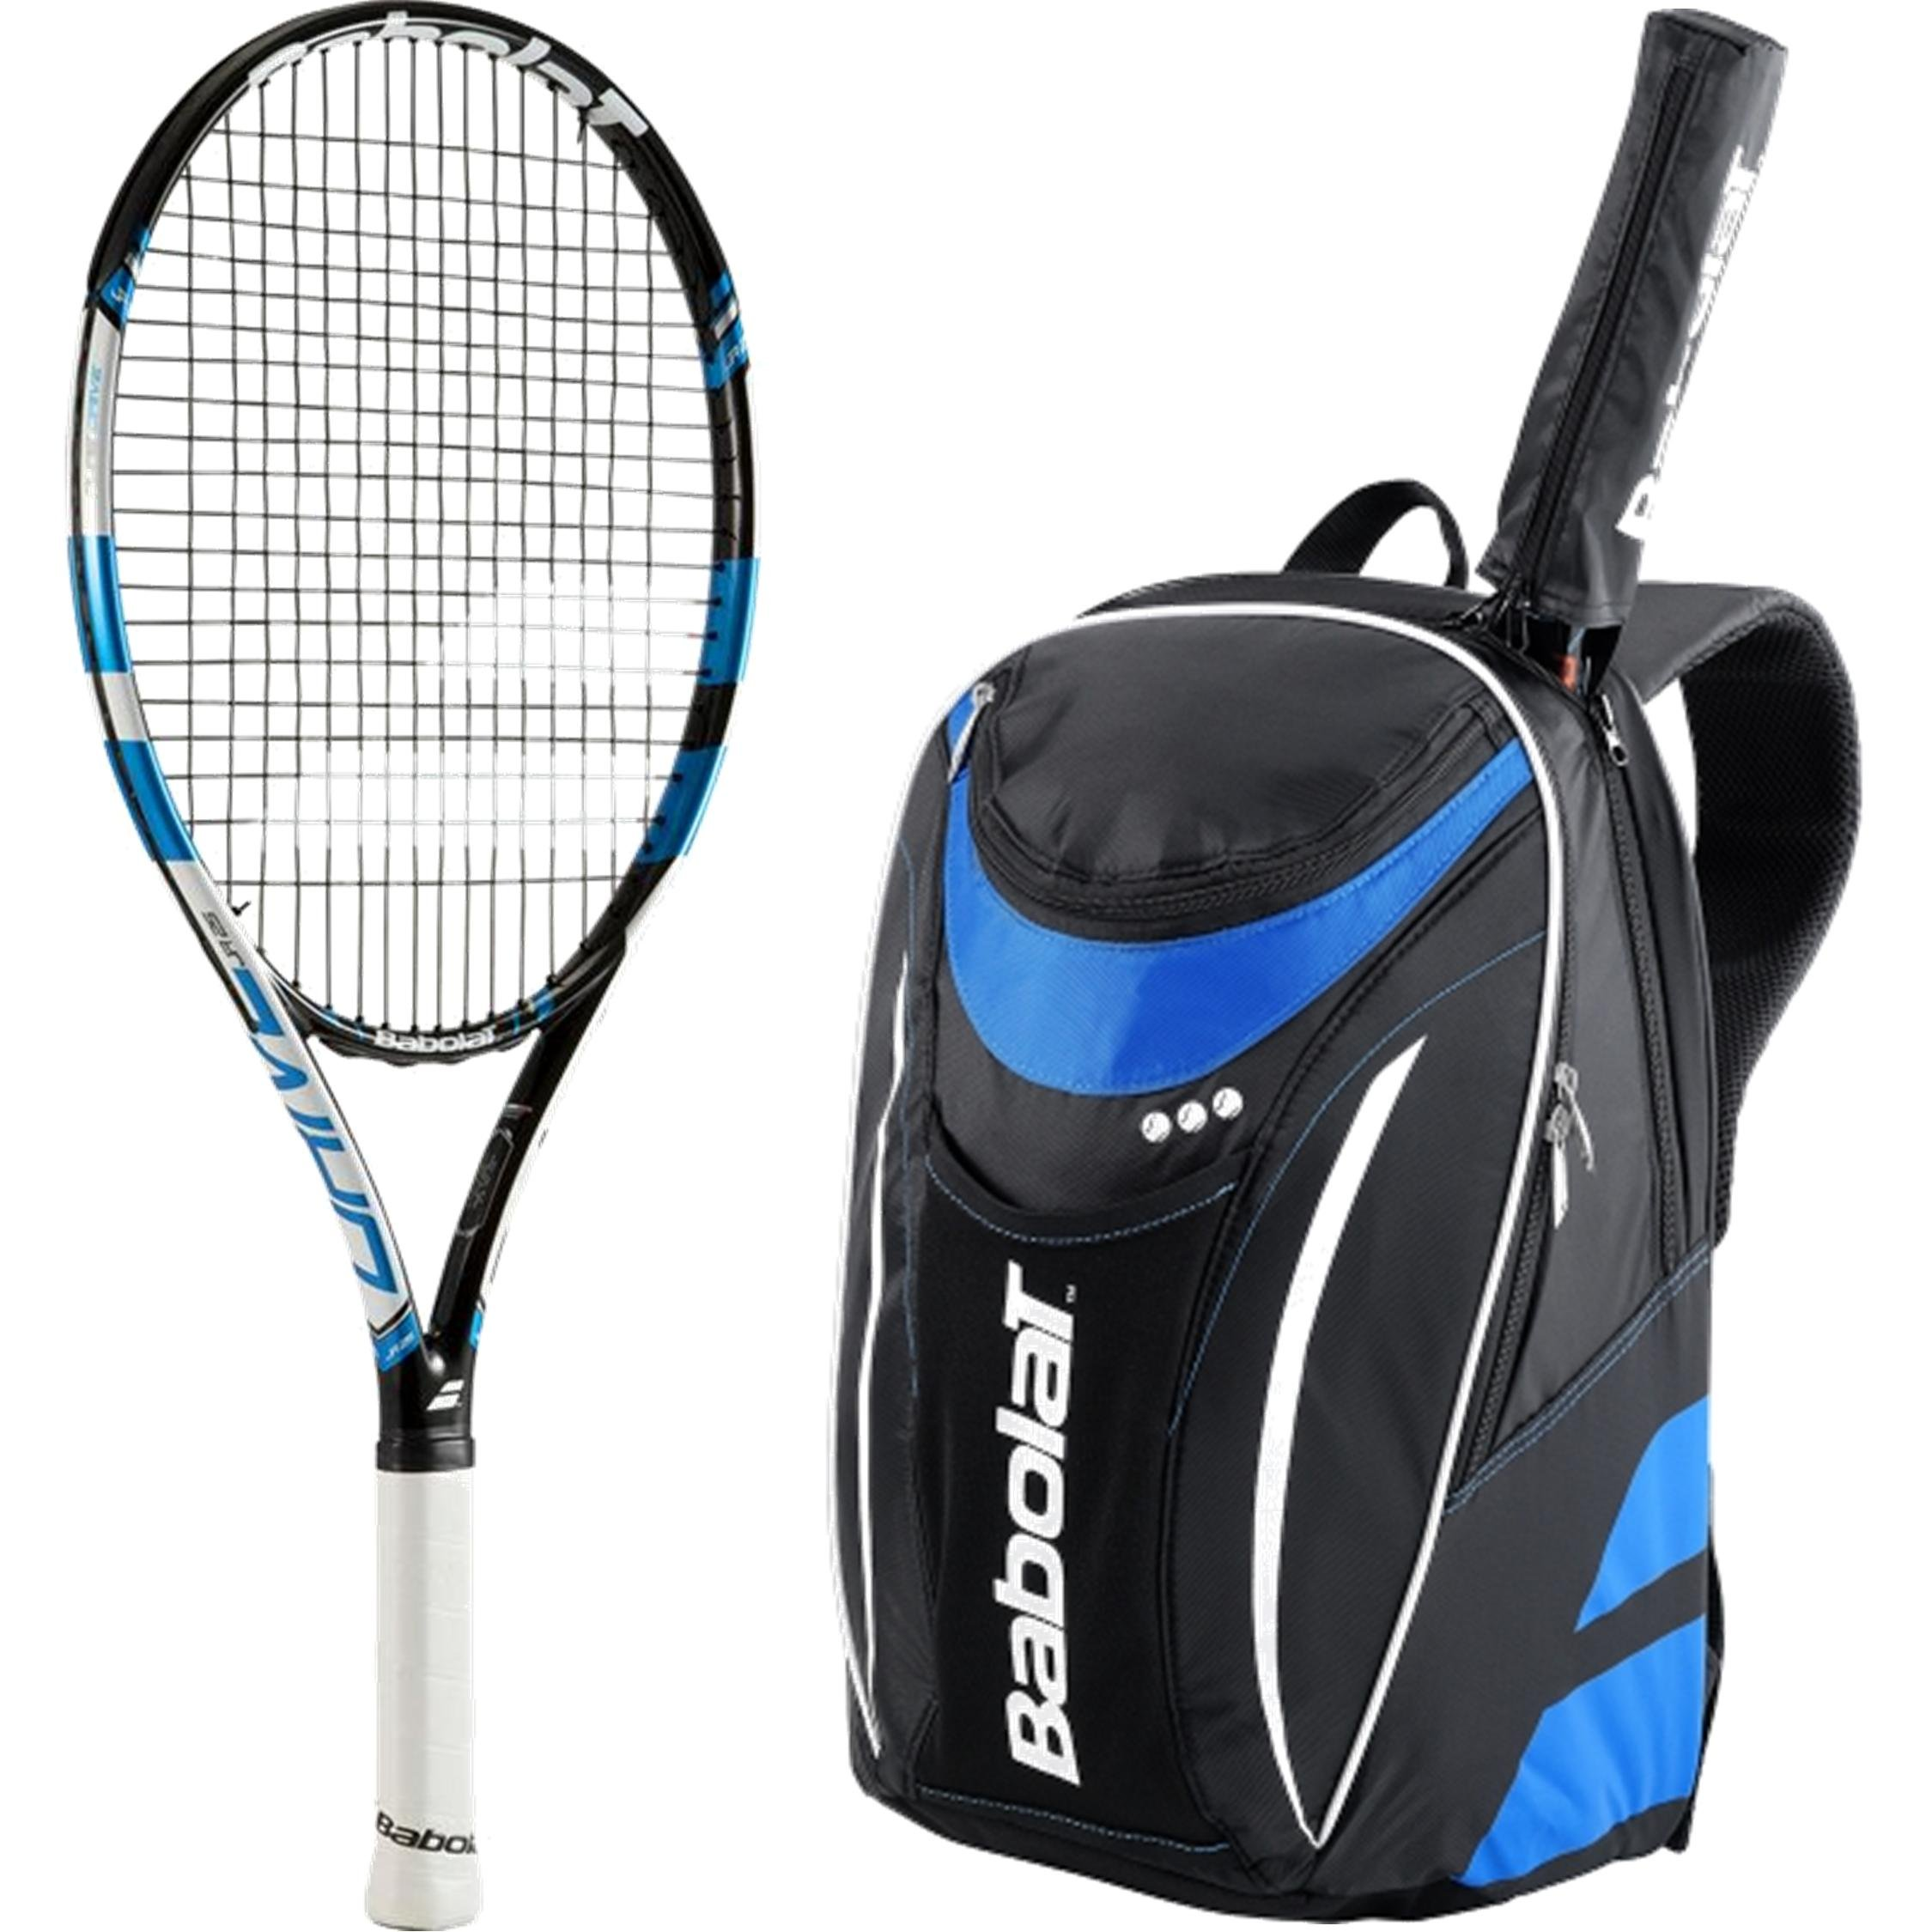 Babolat Pure Drive Junior Tennis Racquet bundled with a Club Tennis Backpack